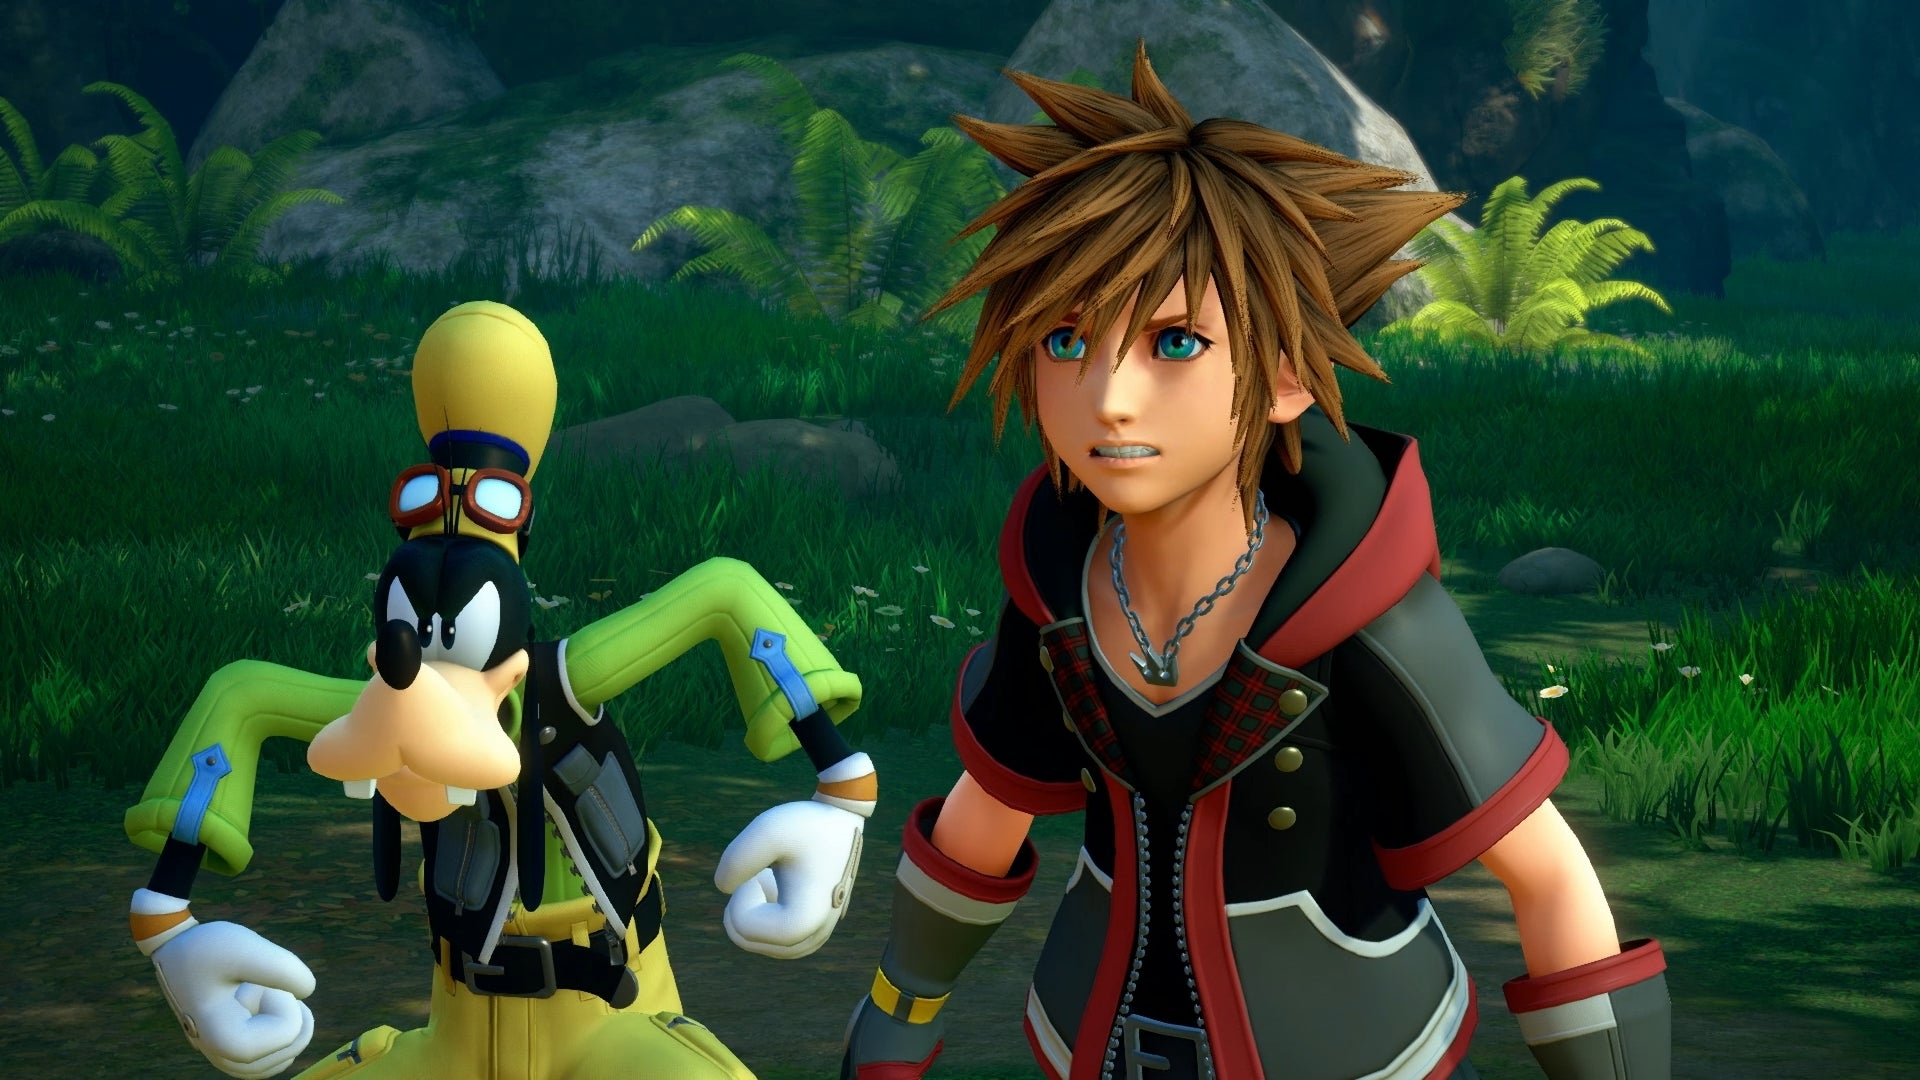 Upcoming Ps4 Games 2018 All The Top Exclusives On Way Trusted Kingdoms Heart 15 25 Remix Region 3 Kingdom Hearts